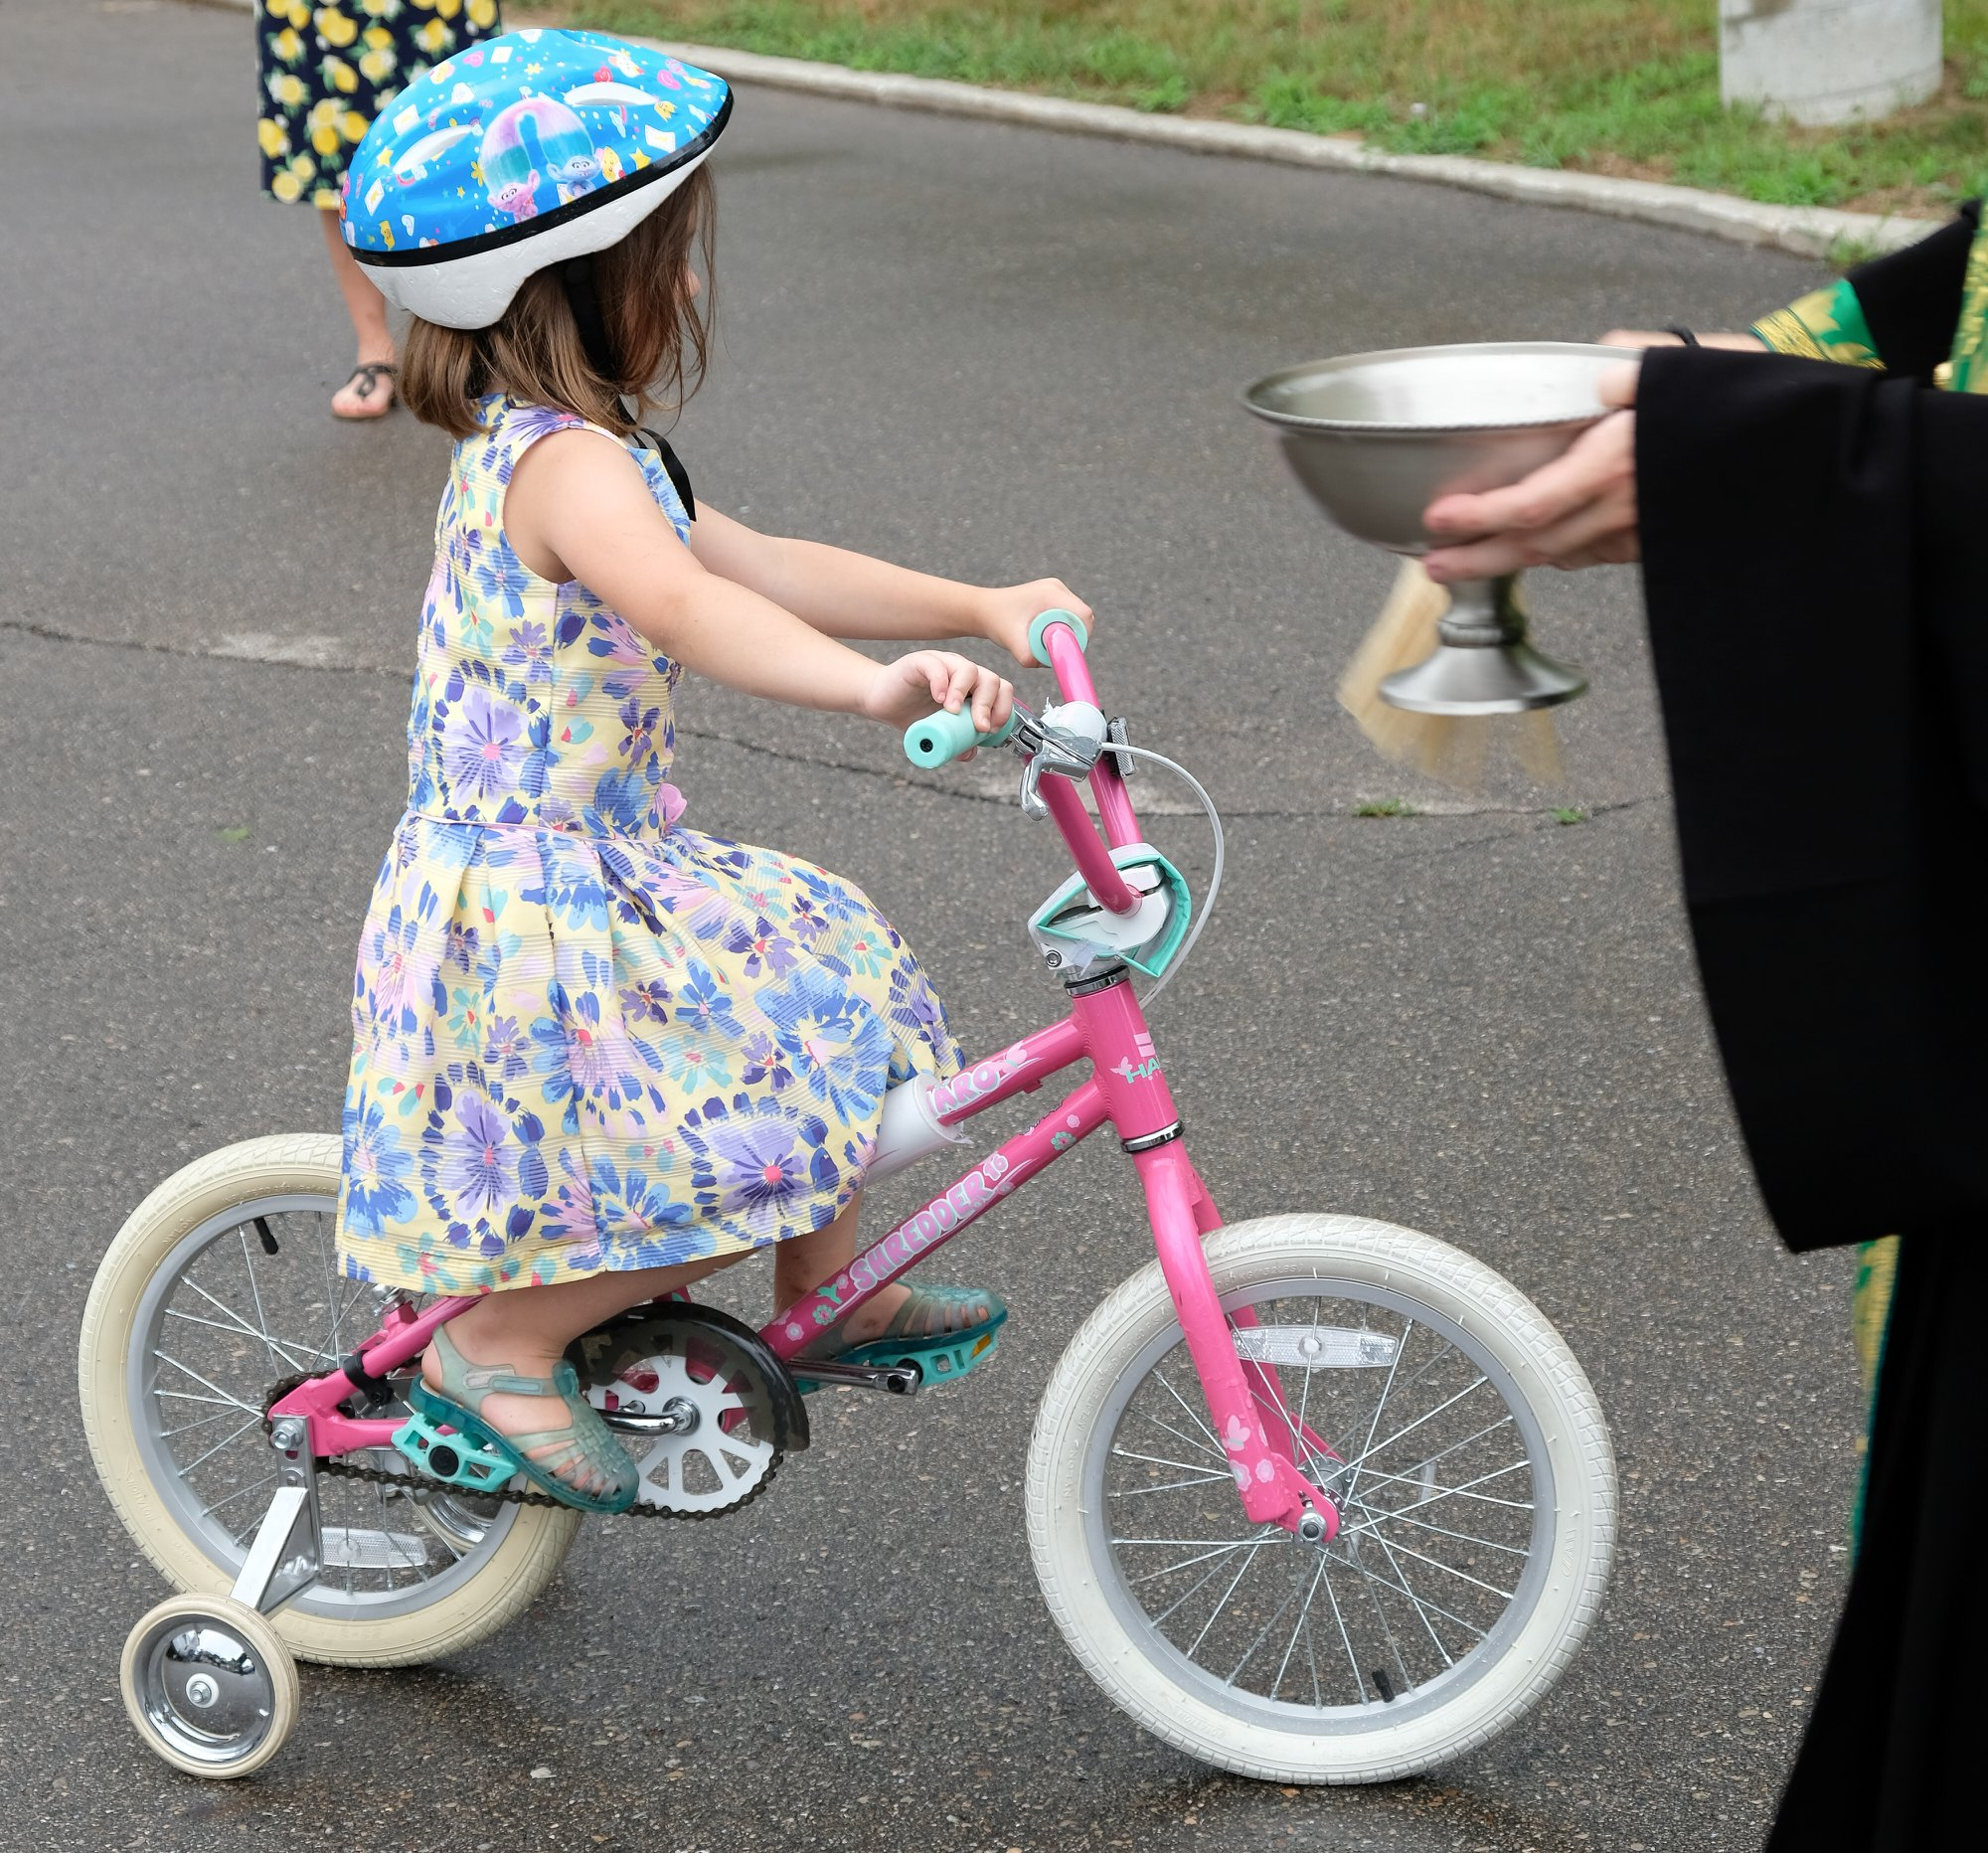 priest blessing young girl on a pink bike